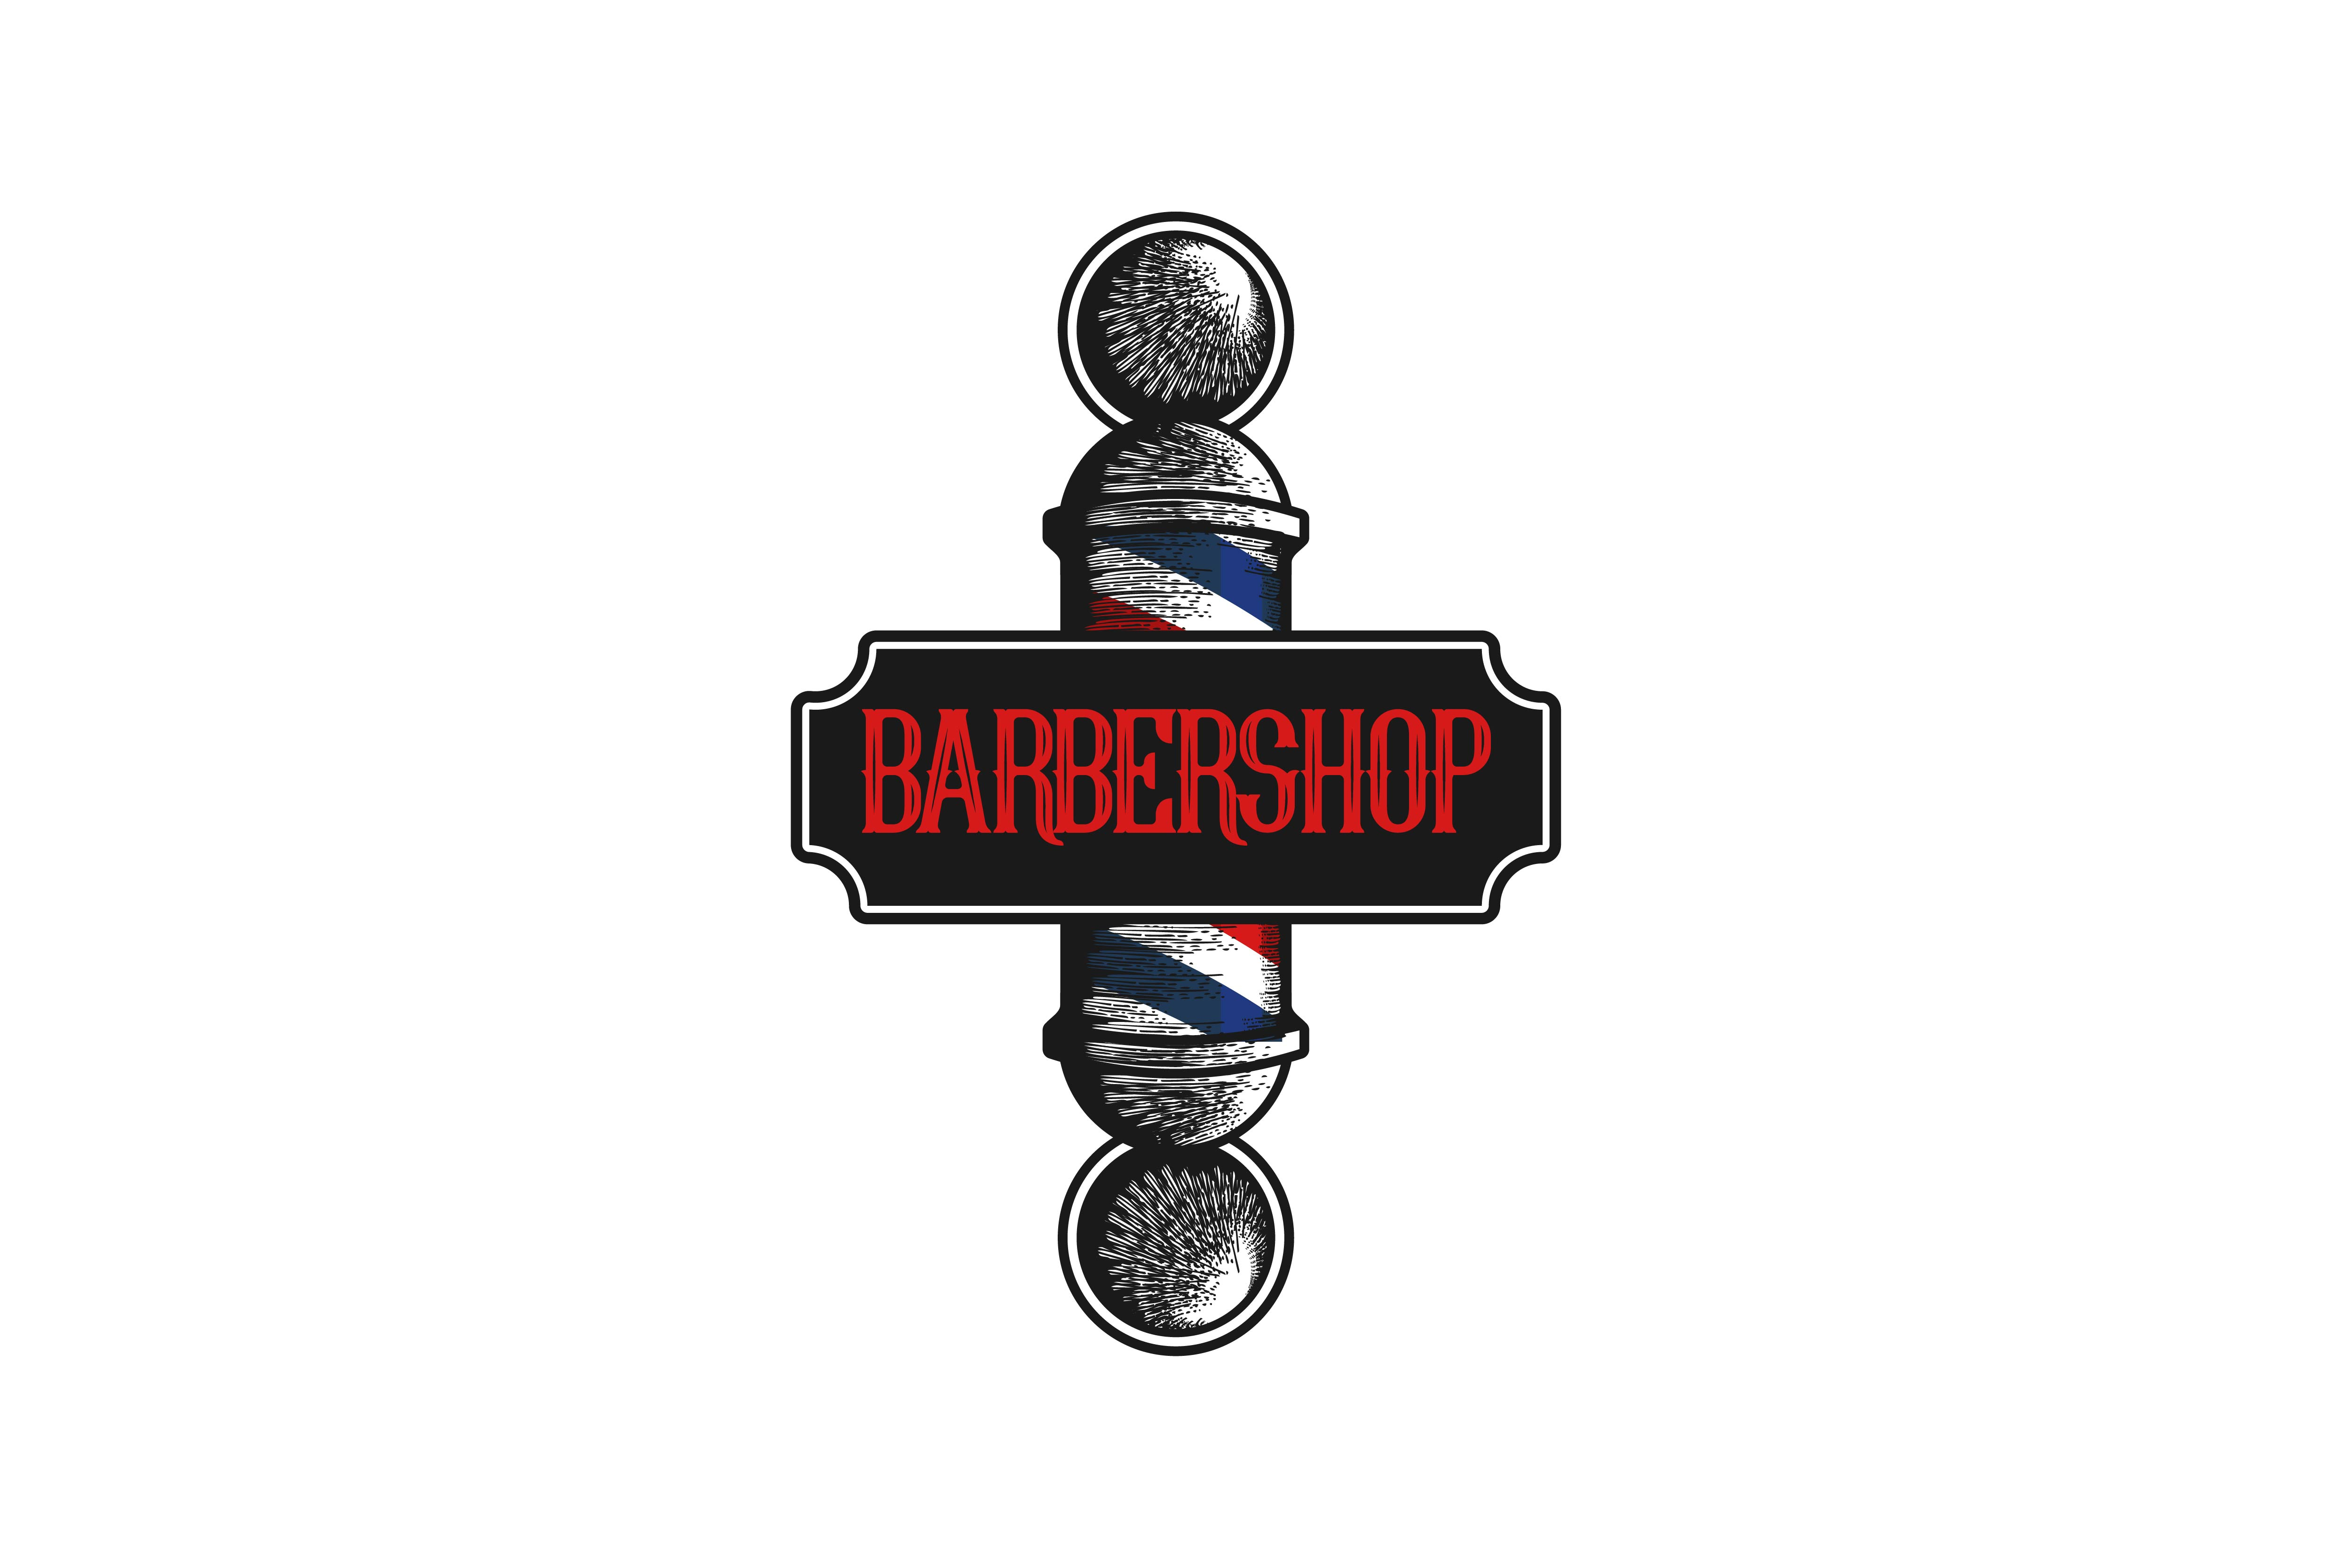 Download Free Hand Drawn Barber Pole Vintage Logo Graphic By for Cricut Explore, Silhouette and other cutting machines.